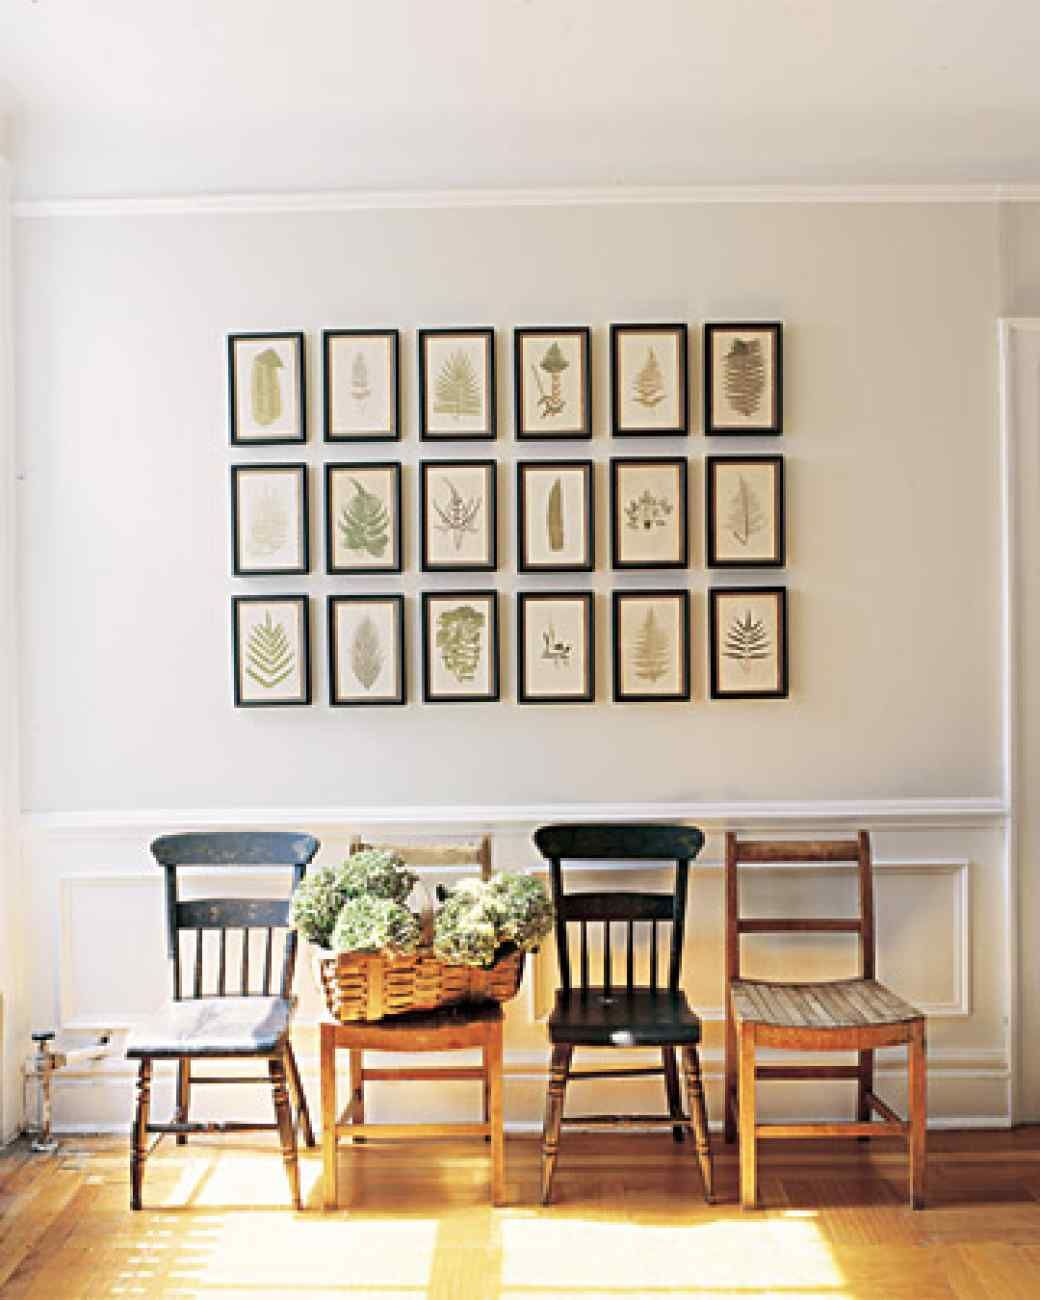 custom framing and original artwork can blow your decorating budget but these diy projects and - Diy Custom Framing